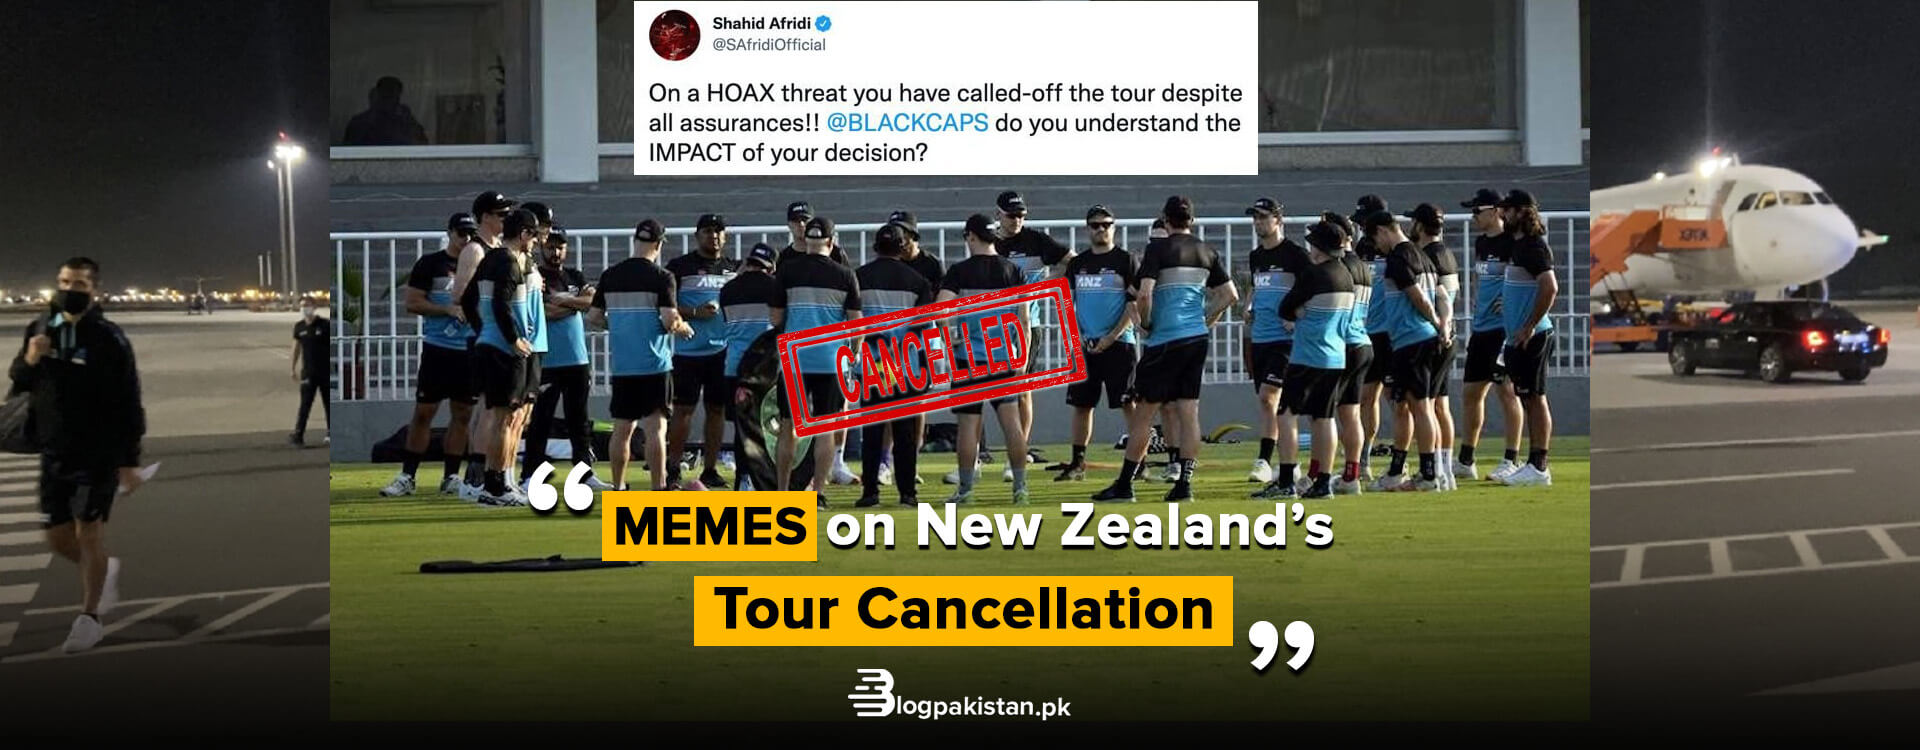 New-Zealand's-tour-cancellation